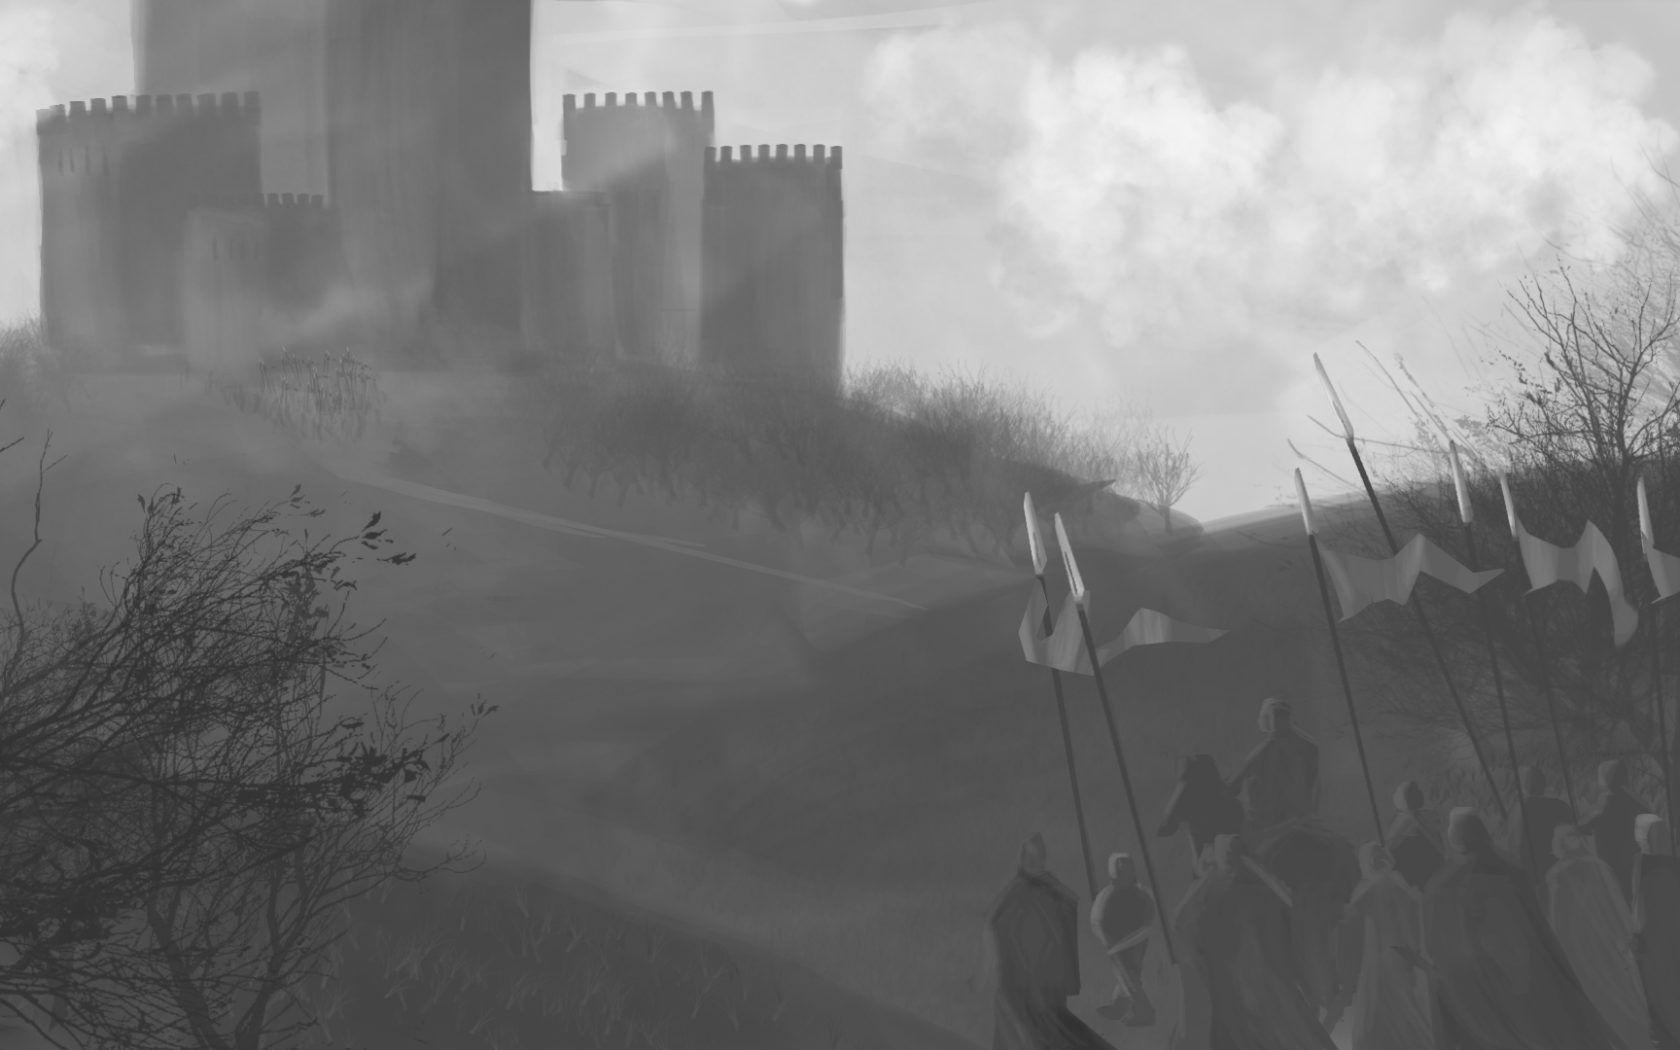 age of empires castle siege game hd wallpaper 1920×1080 29445 | HD ...